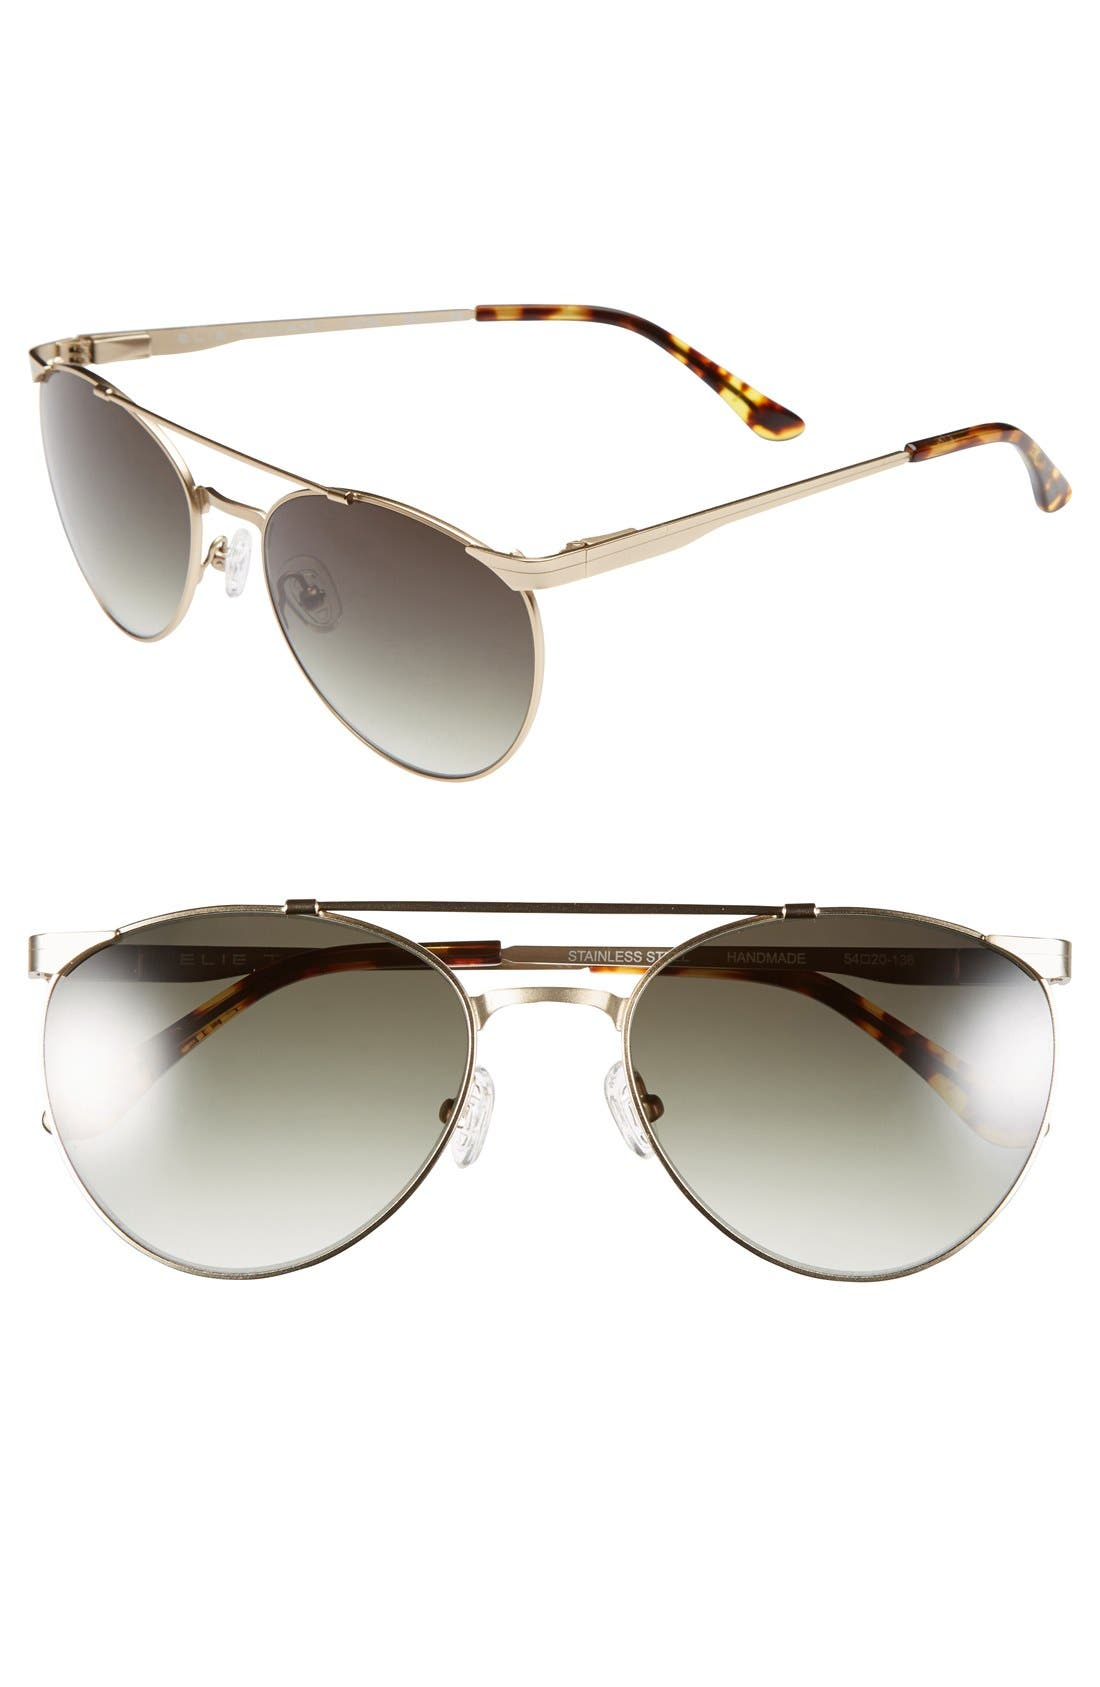 Main Image - Elie Tahari 54mm Aviator Sunglasses